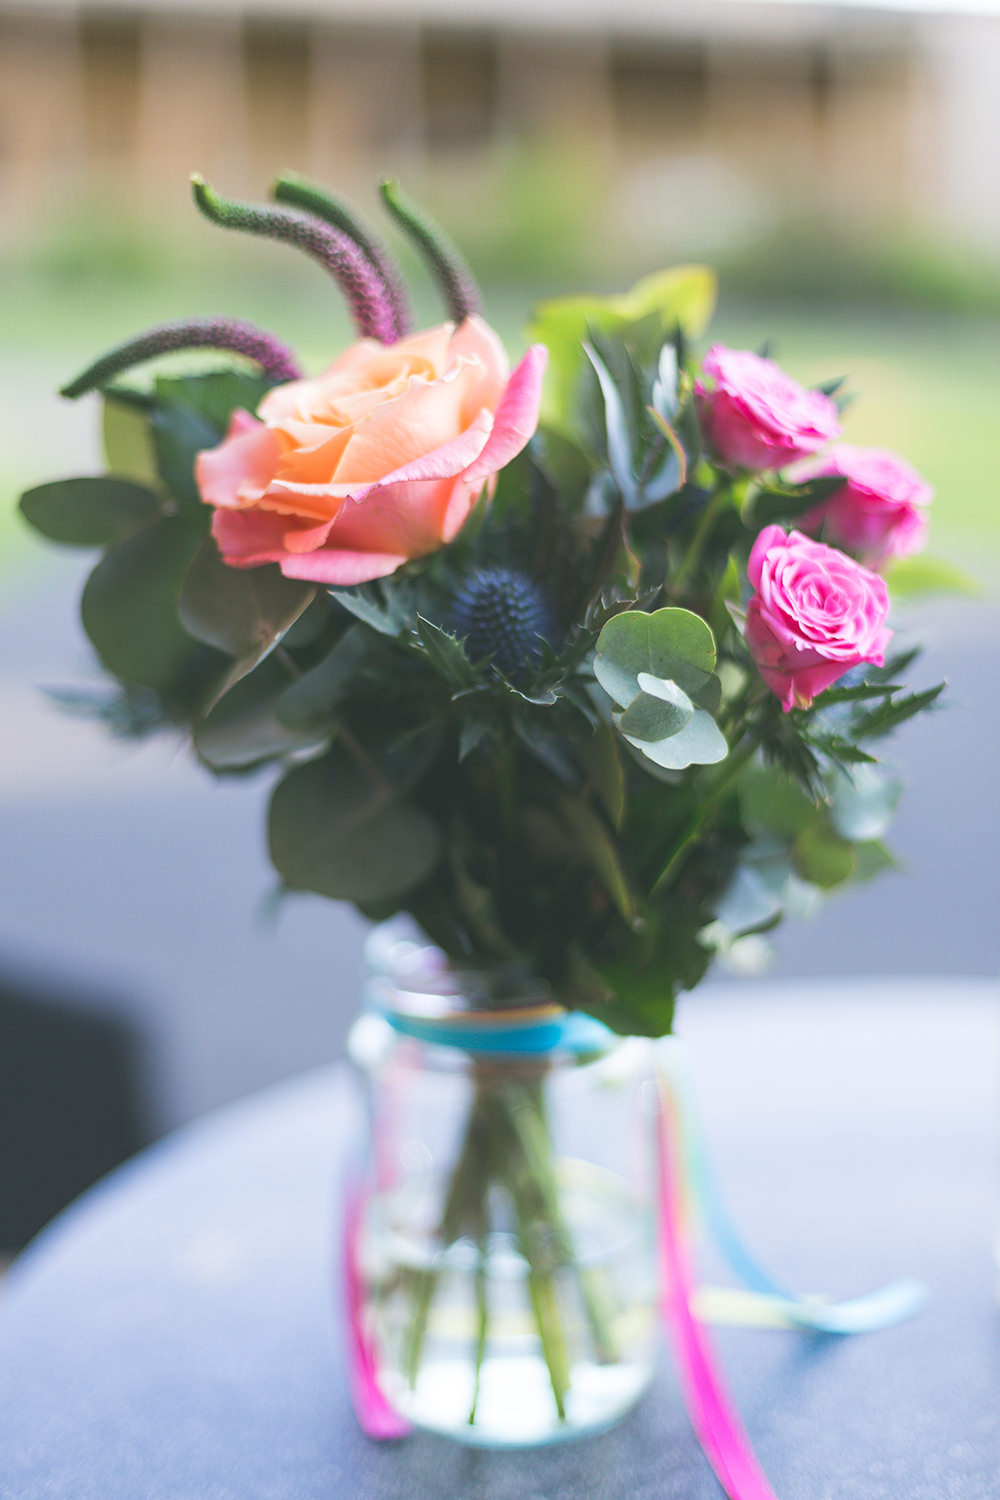 Flowers Jar Multi Colour Rose Pink Yellow Coral Purple Ribbons Hothorpe Hall Woodlands Wedding Lucy Long Photography